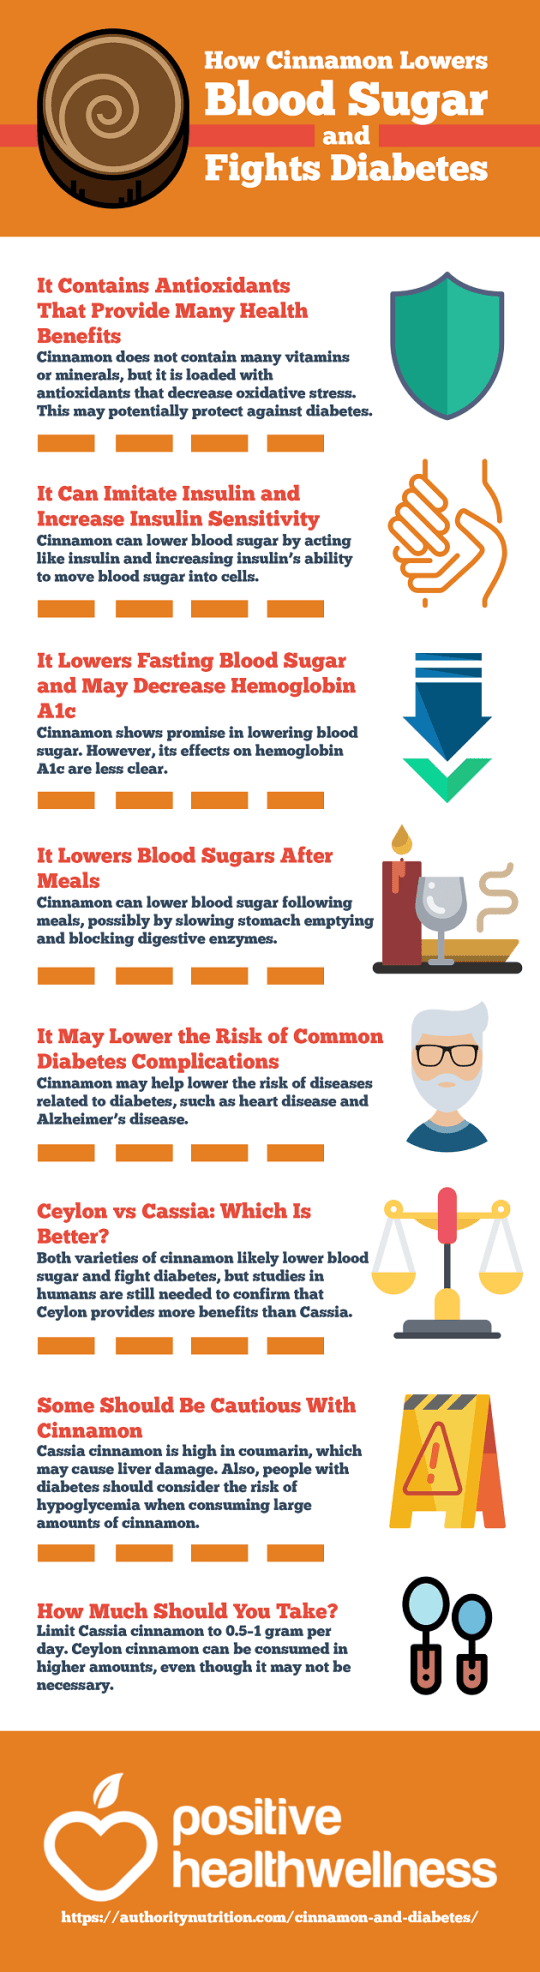 How Cinnamon Lowers Blood Sugar and Fights Diabetes